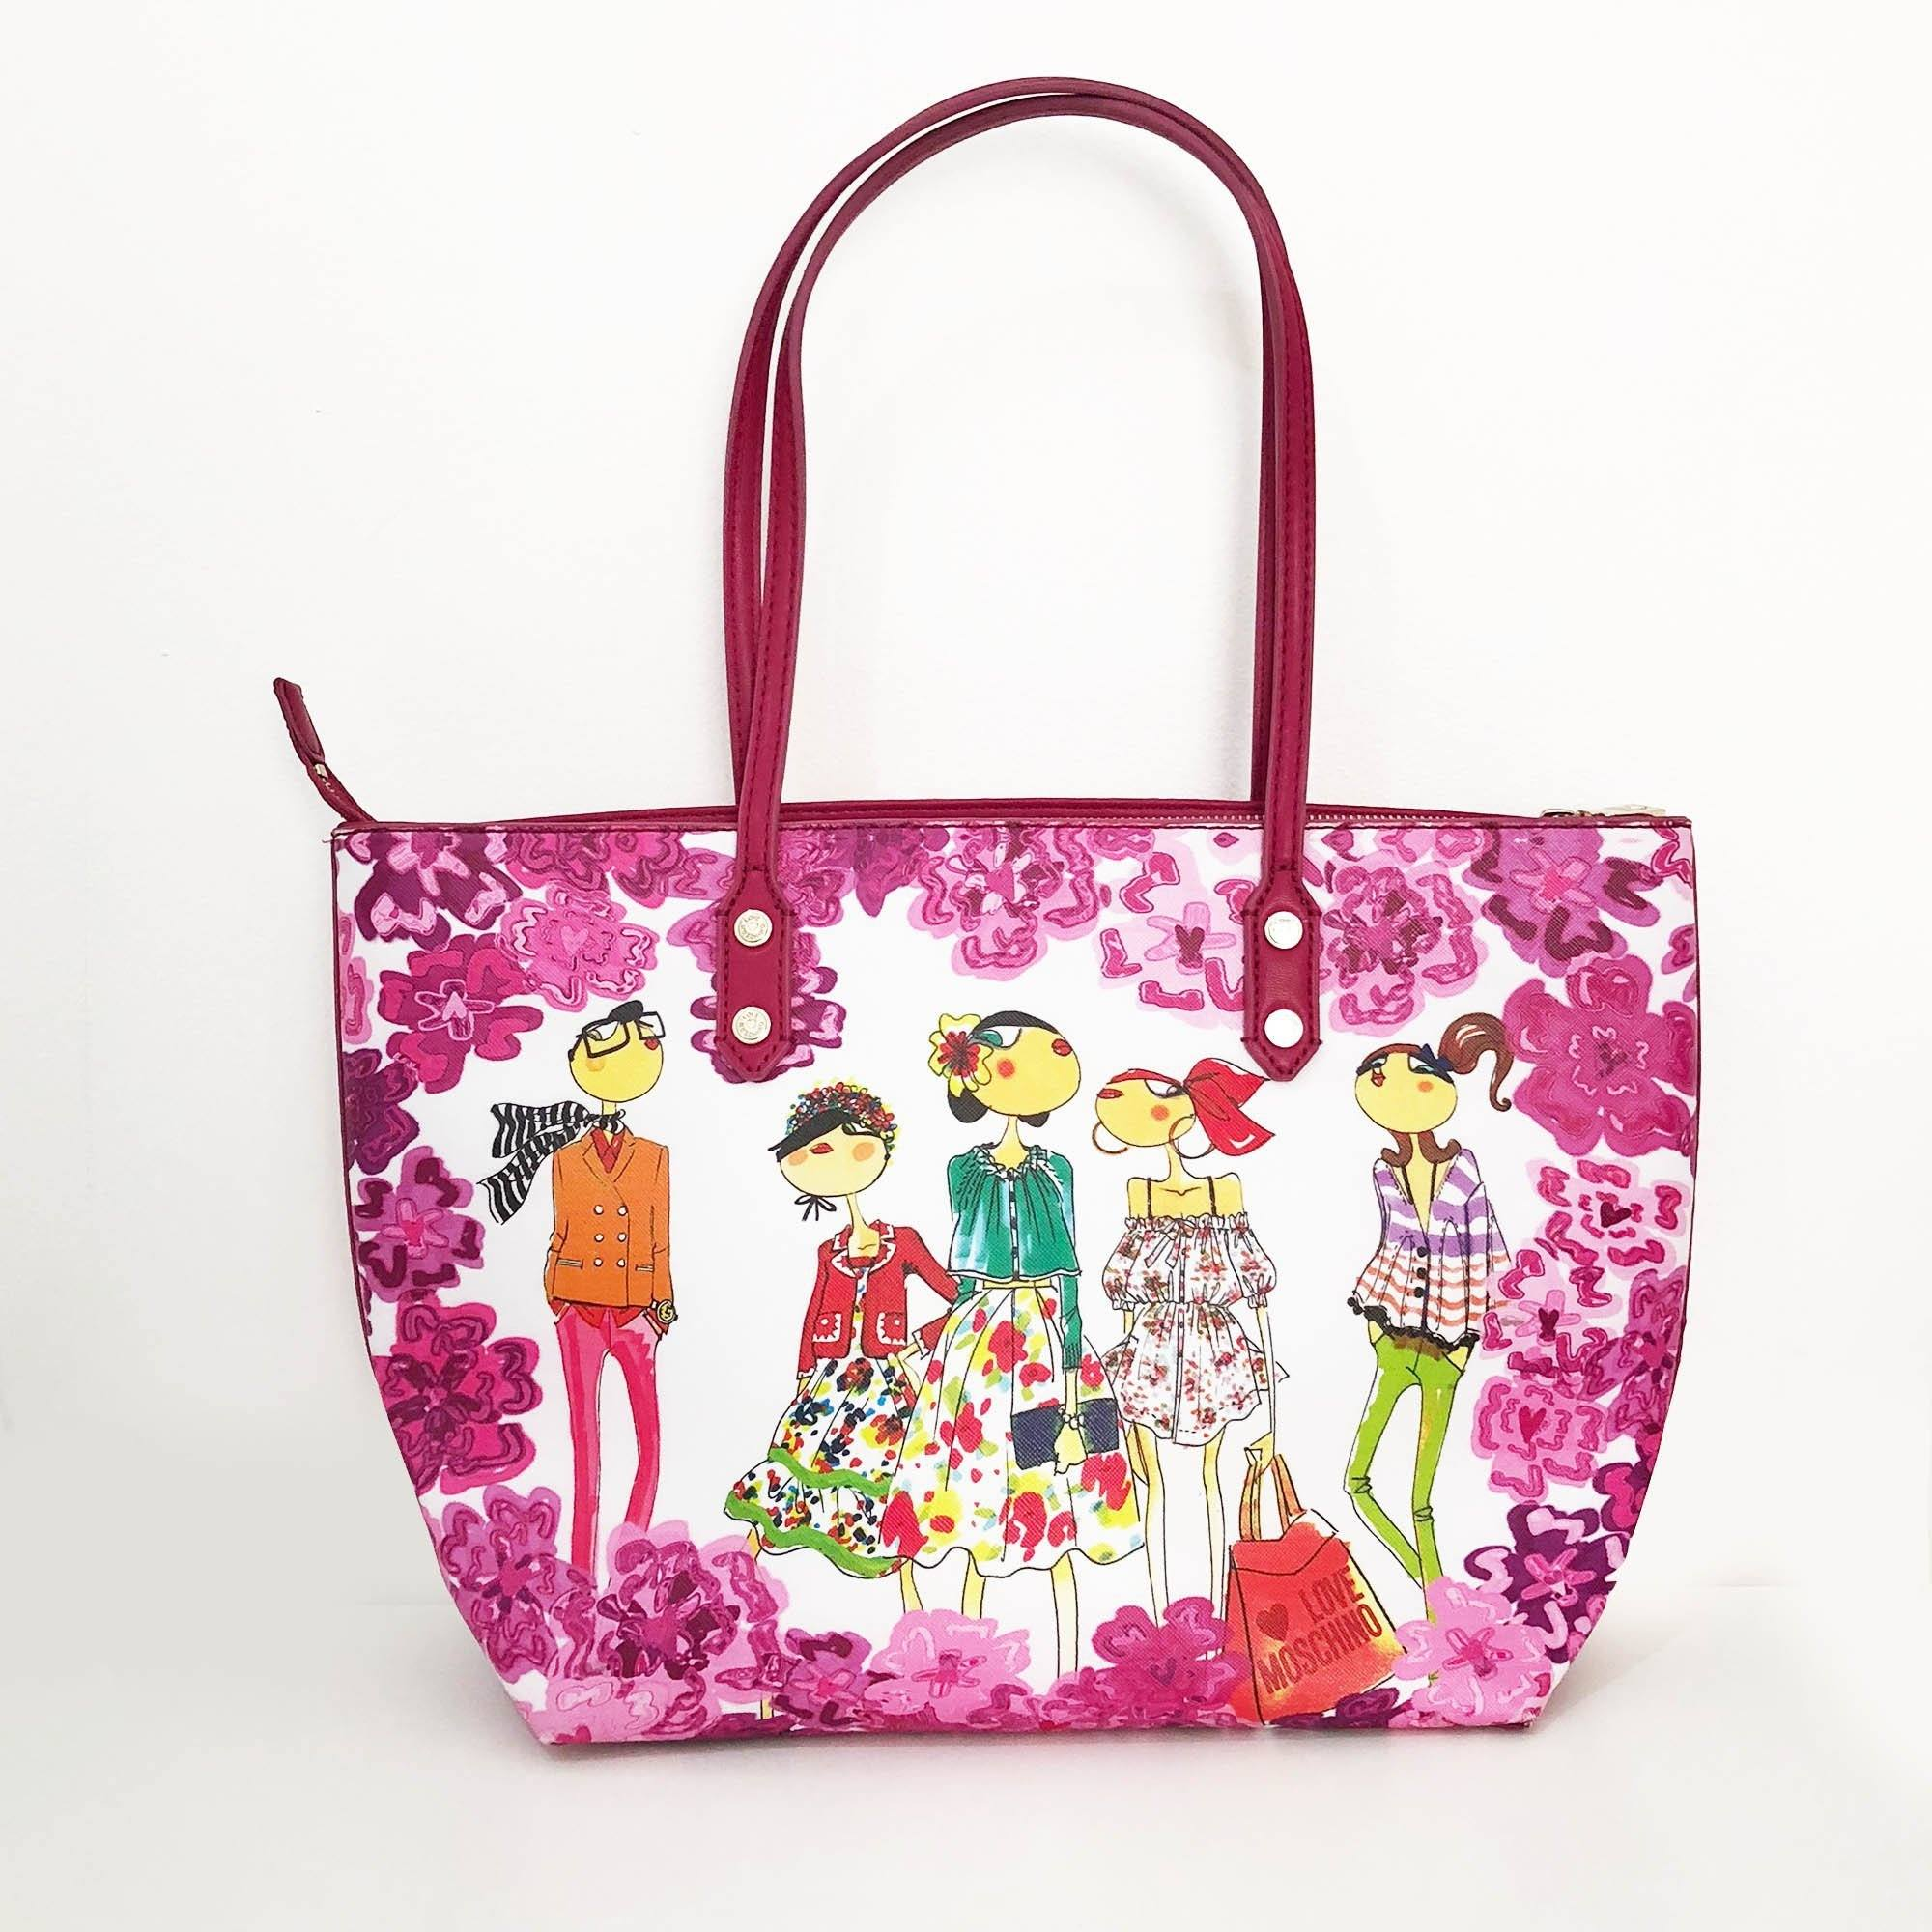 Love Moschino Printed Tote Bag SS 2013